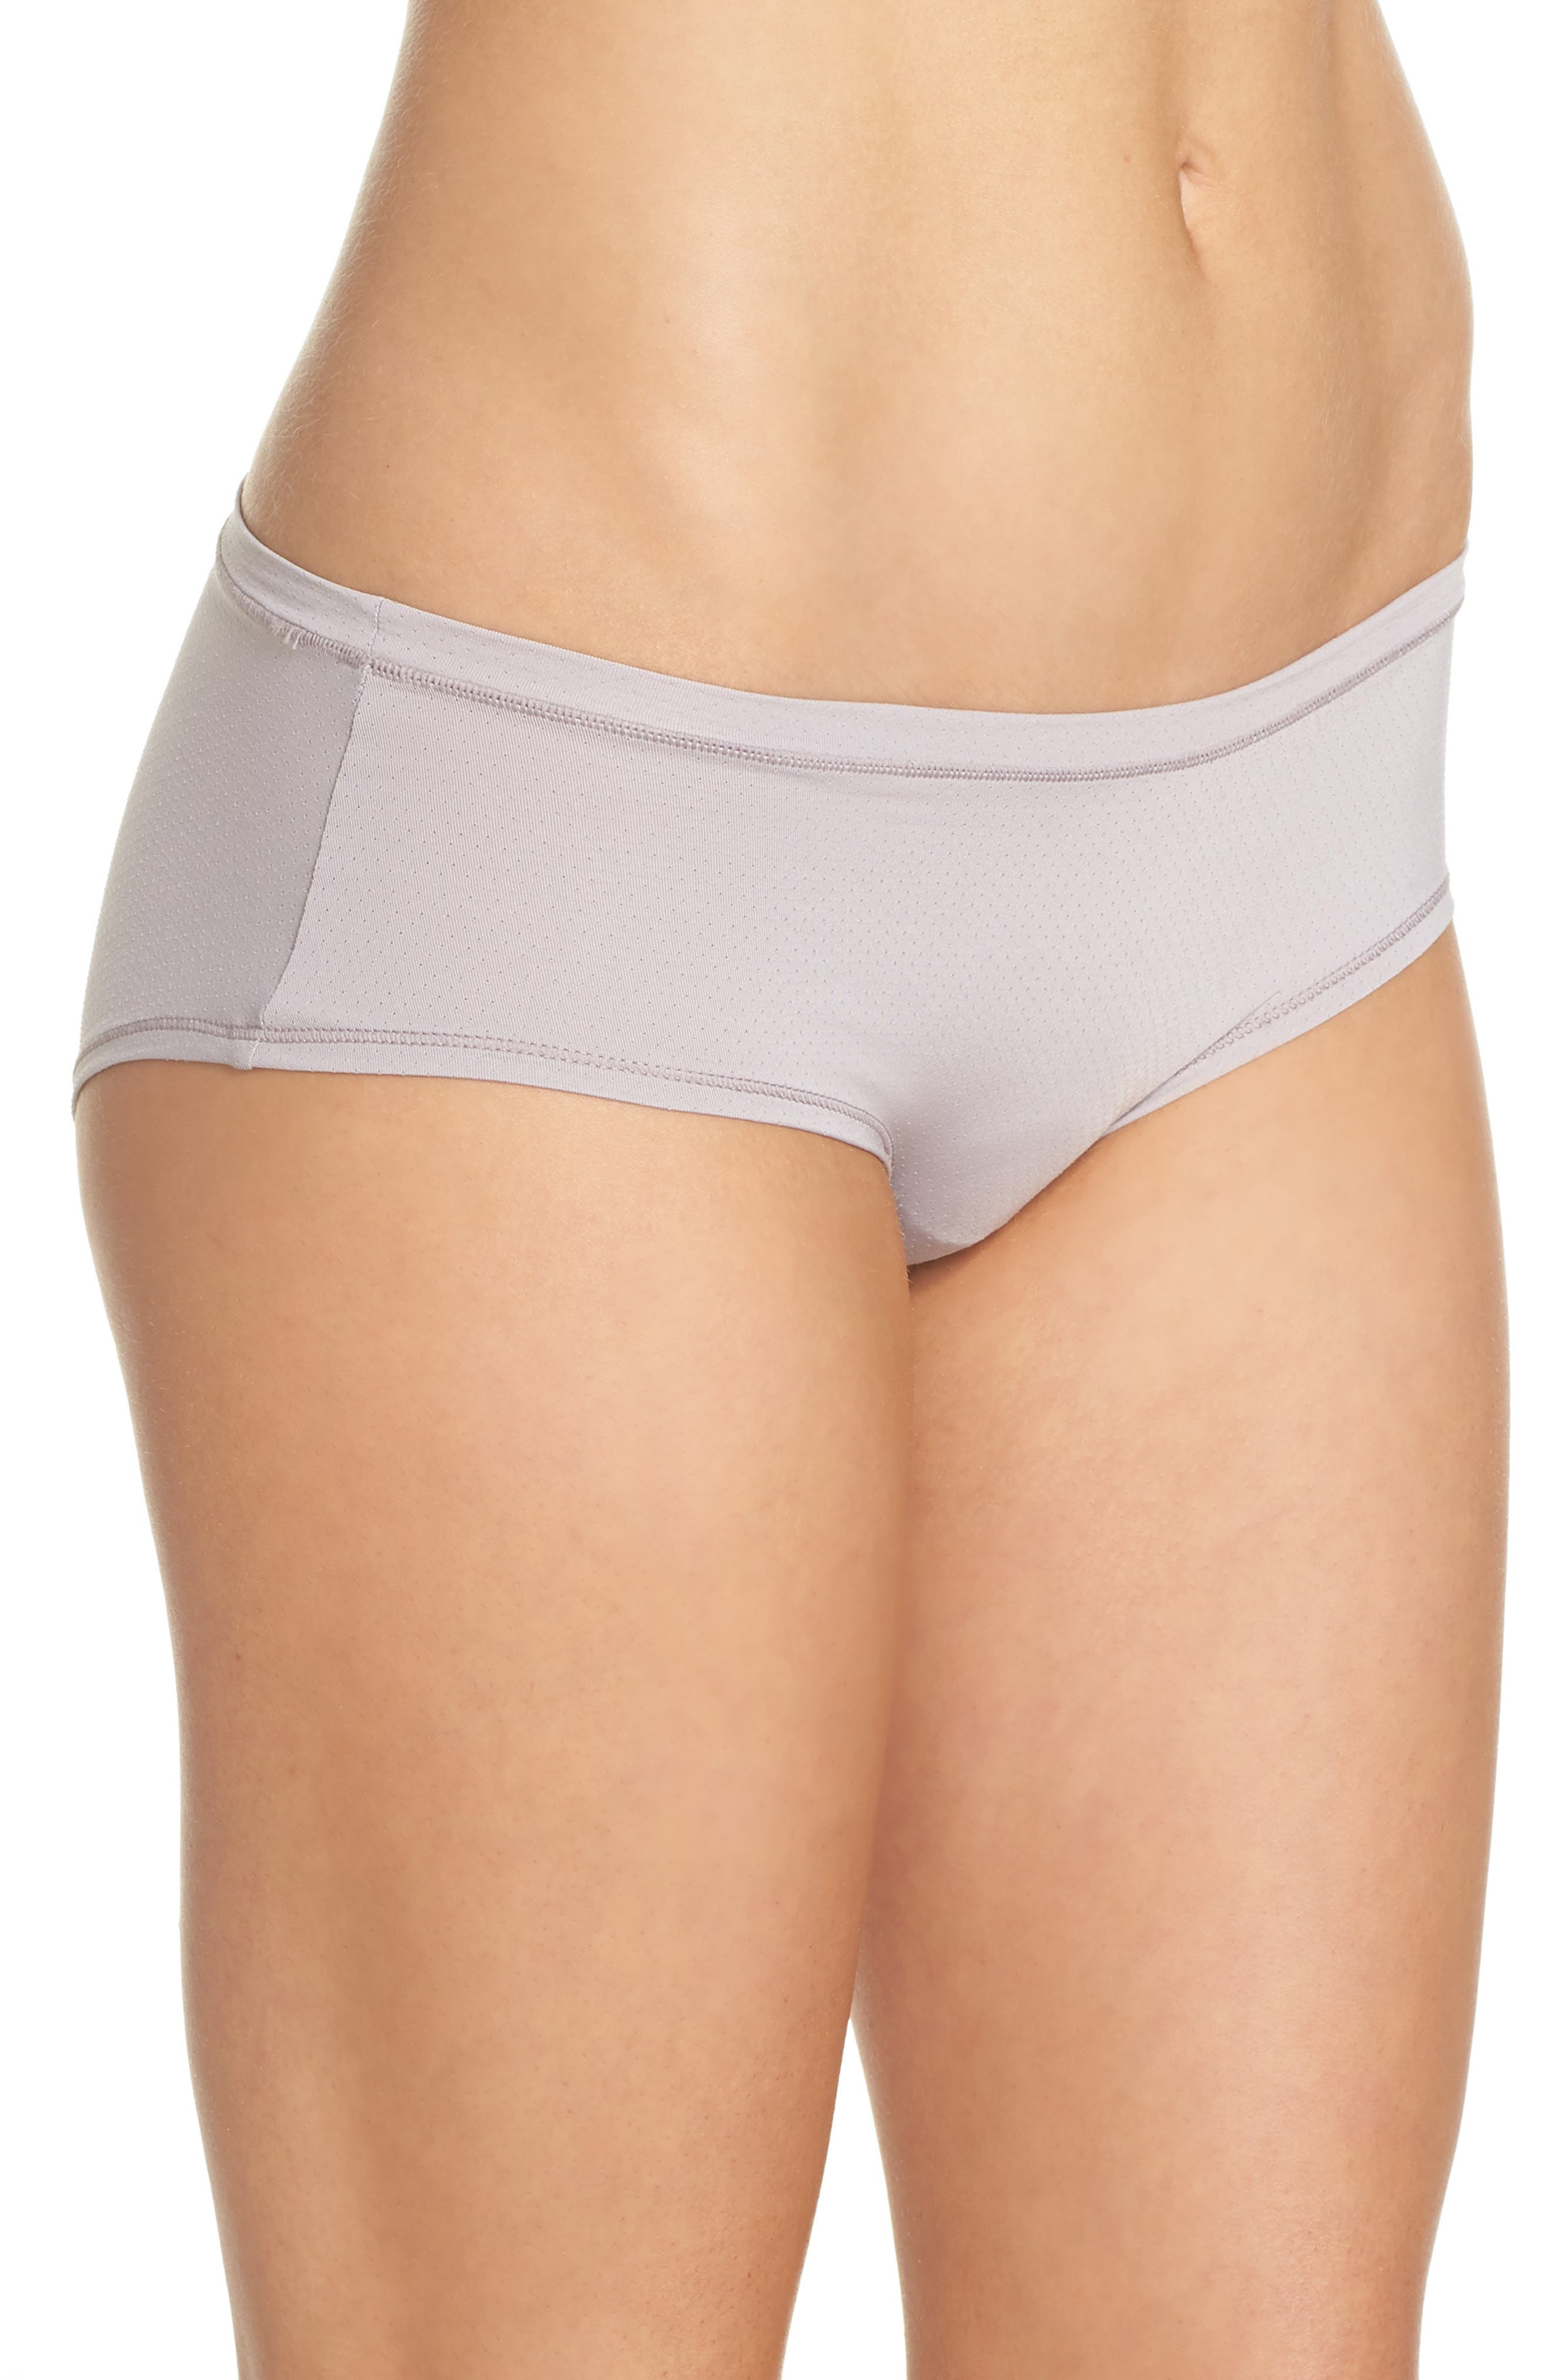 Active Mesh Hipster Briefs,                             Alternate thumbnail 3, color,                             050